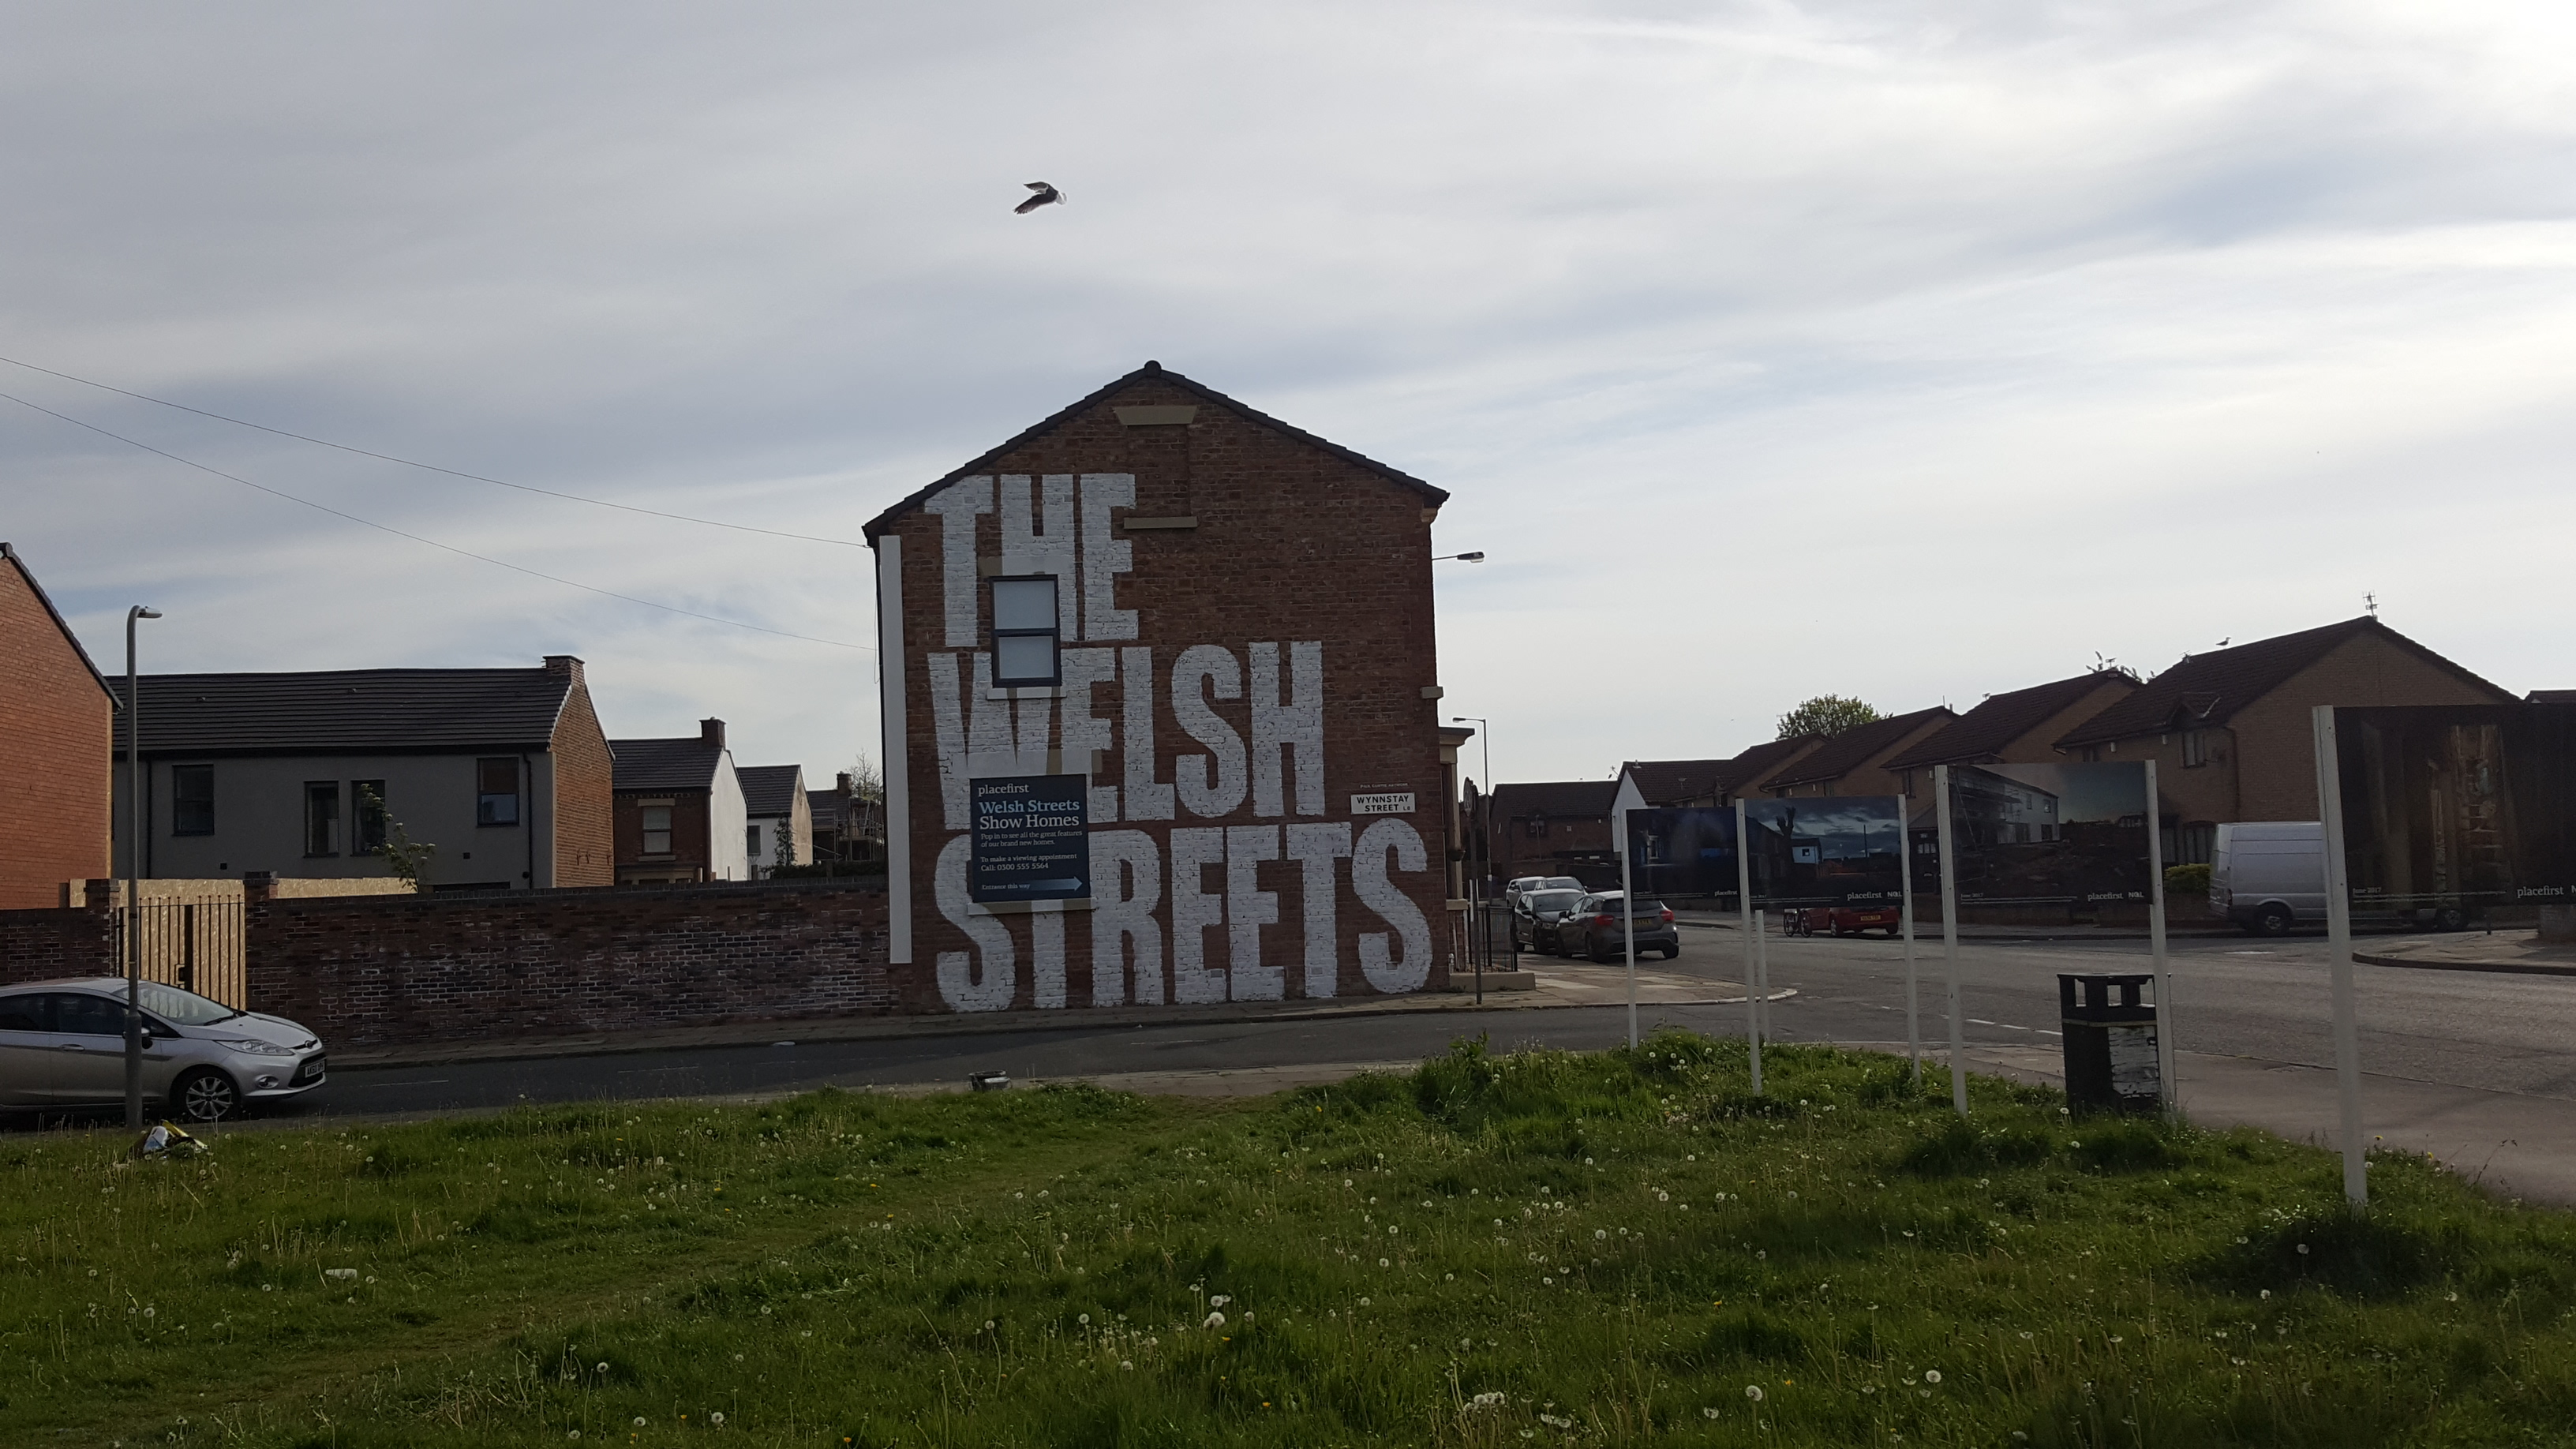 Welsh Streets, Liverpool